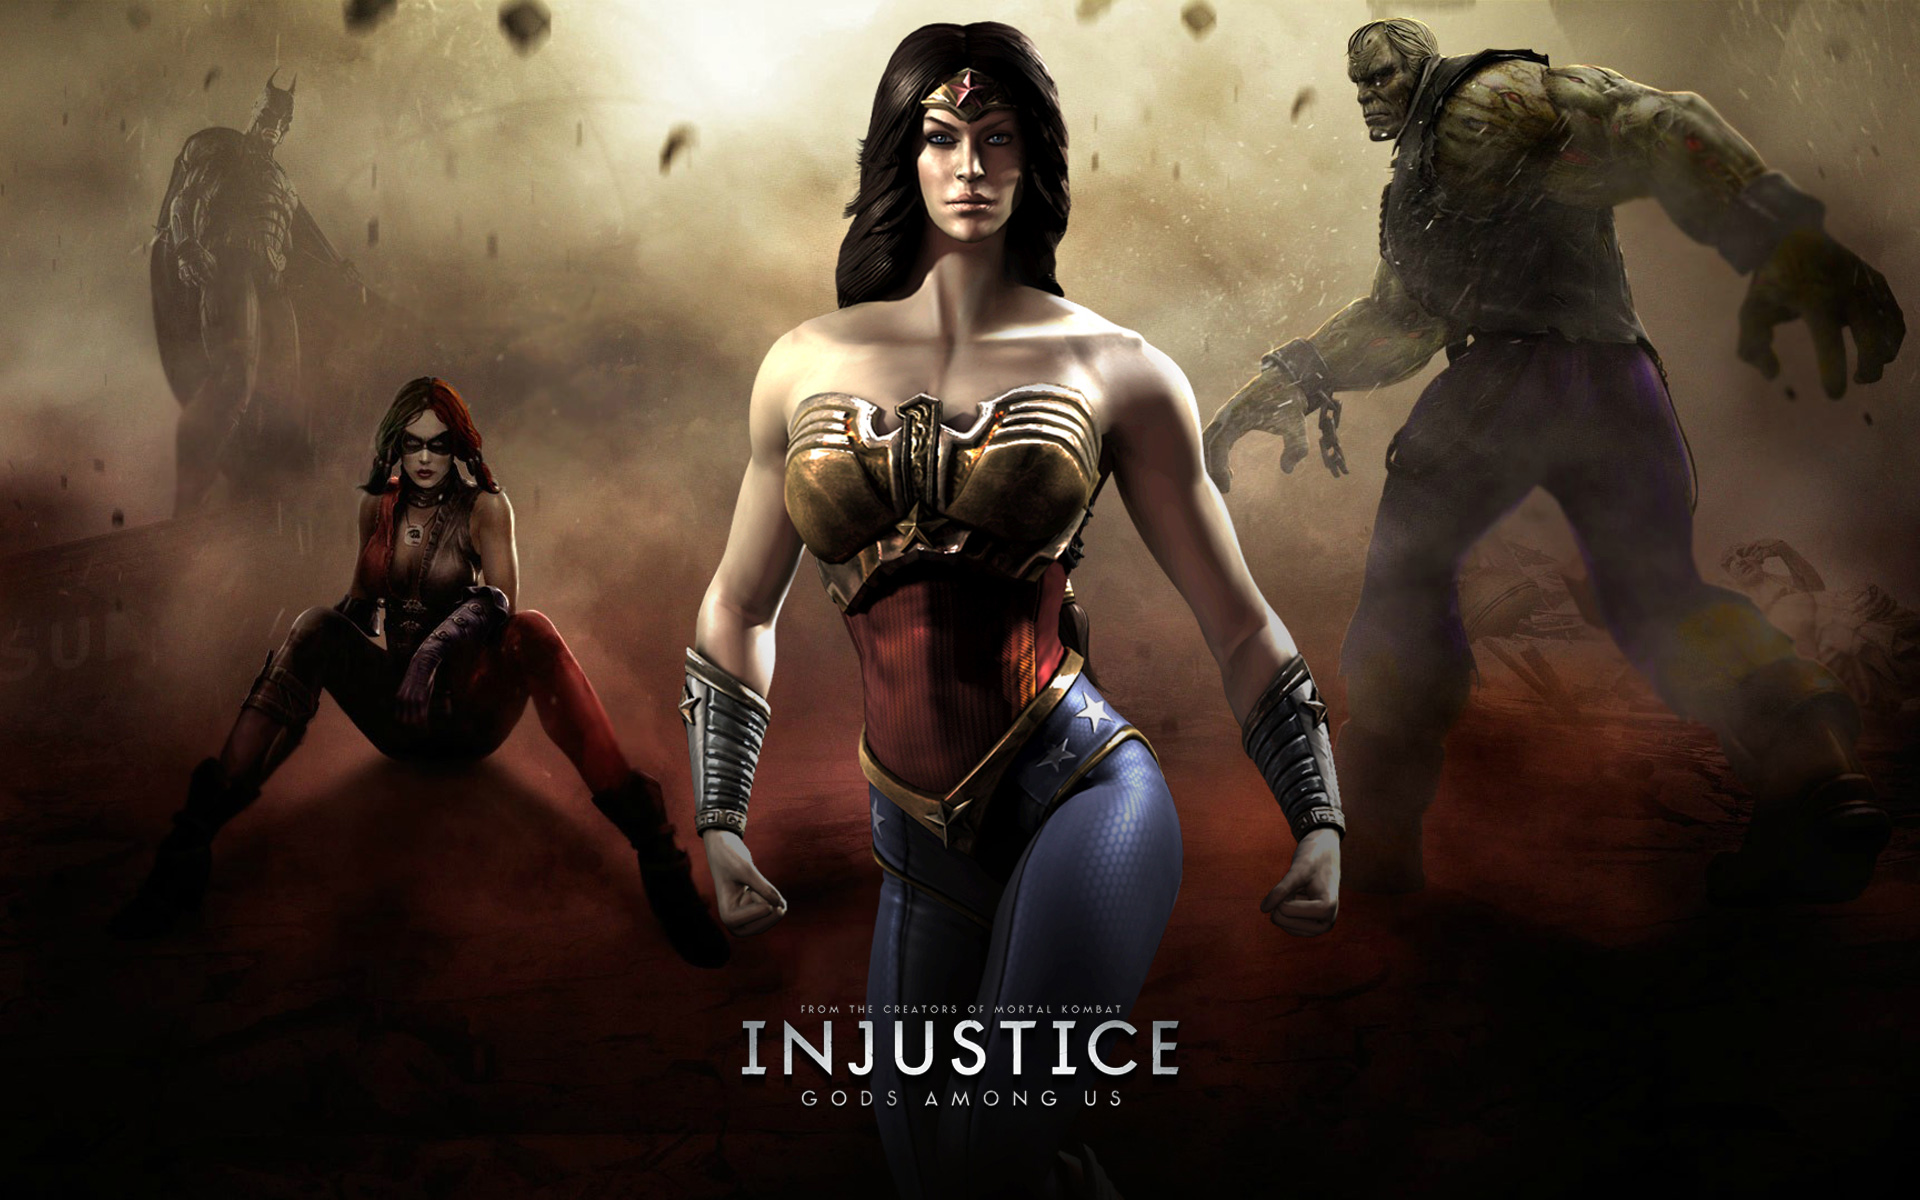 Free Injustice: Gods Among Us Wallpaper in 1920x1200